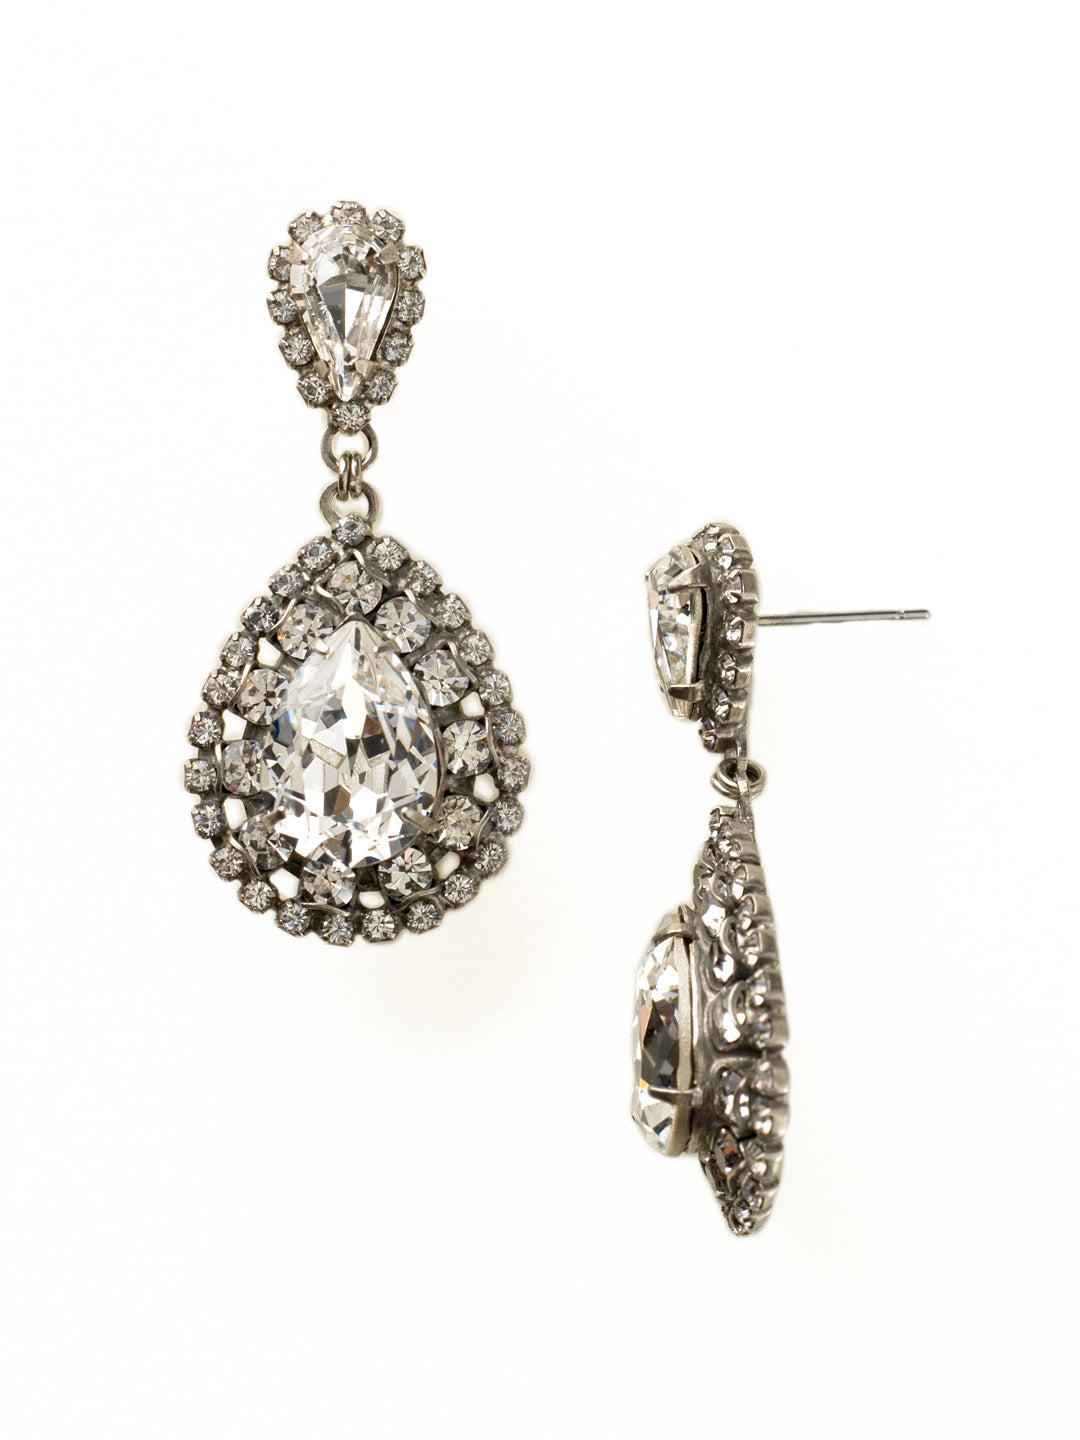 Oval Encrusted Crystal Dangle Earrings - ECW47ASCRY